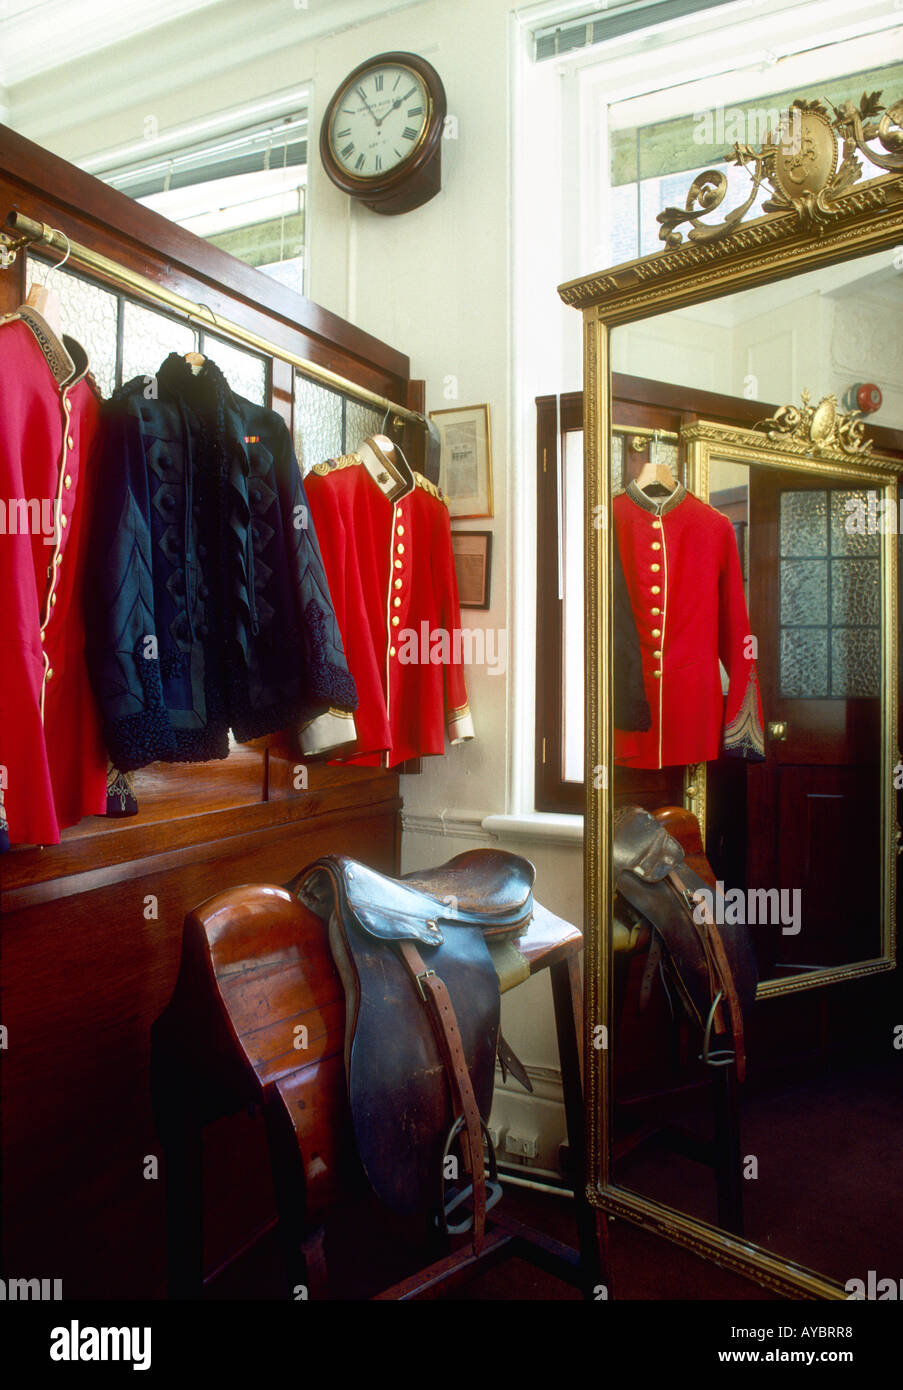 Scarlet jacket and Black Astrakan jacket, Fitting Room, Savile Row tailors Hogg JB Johnstone, London - Stock Image